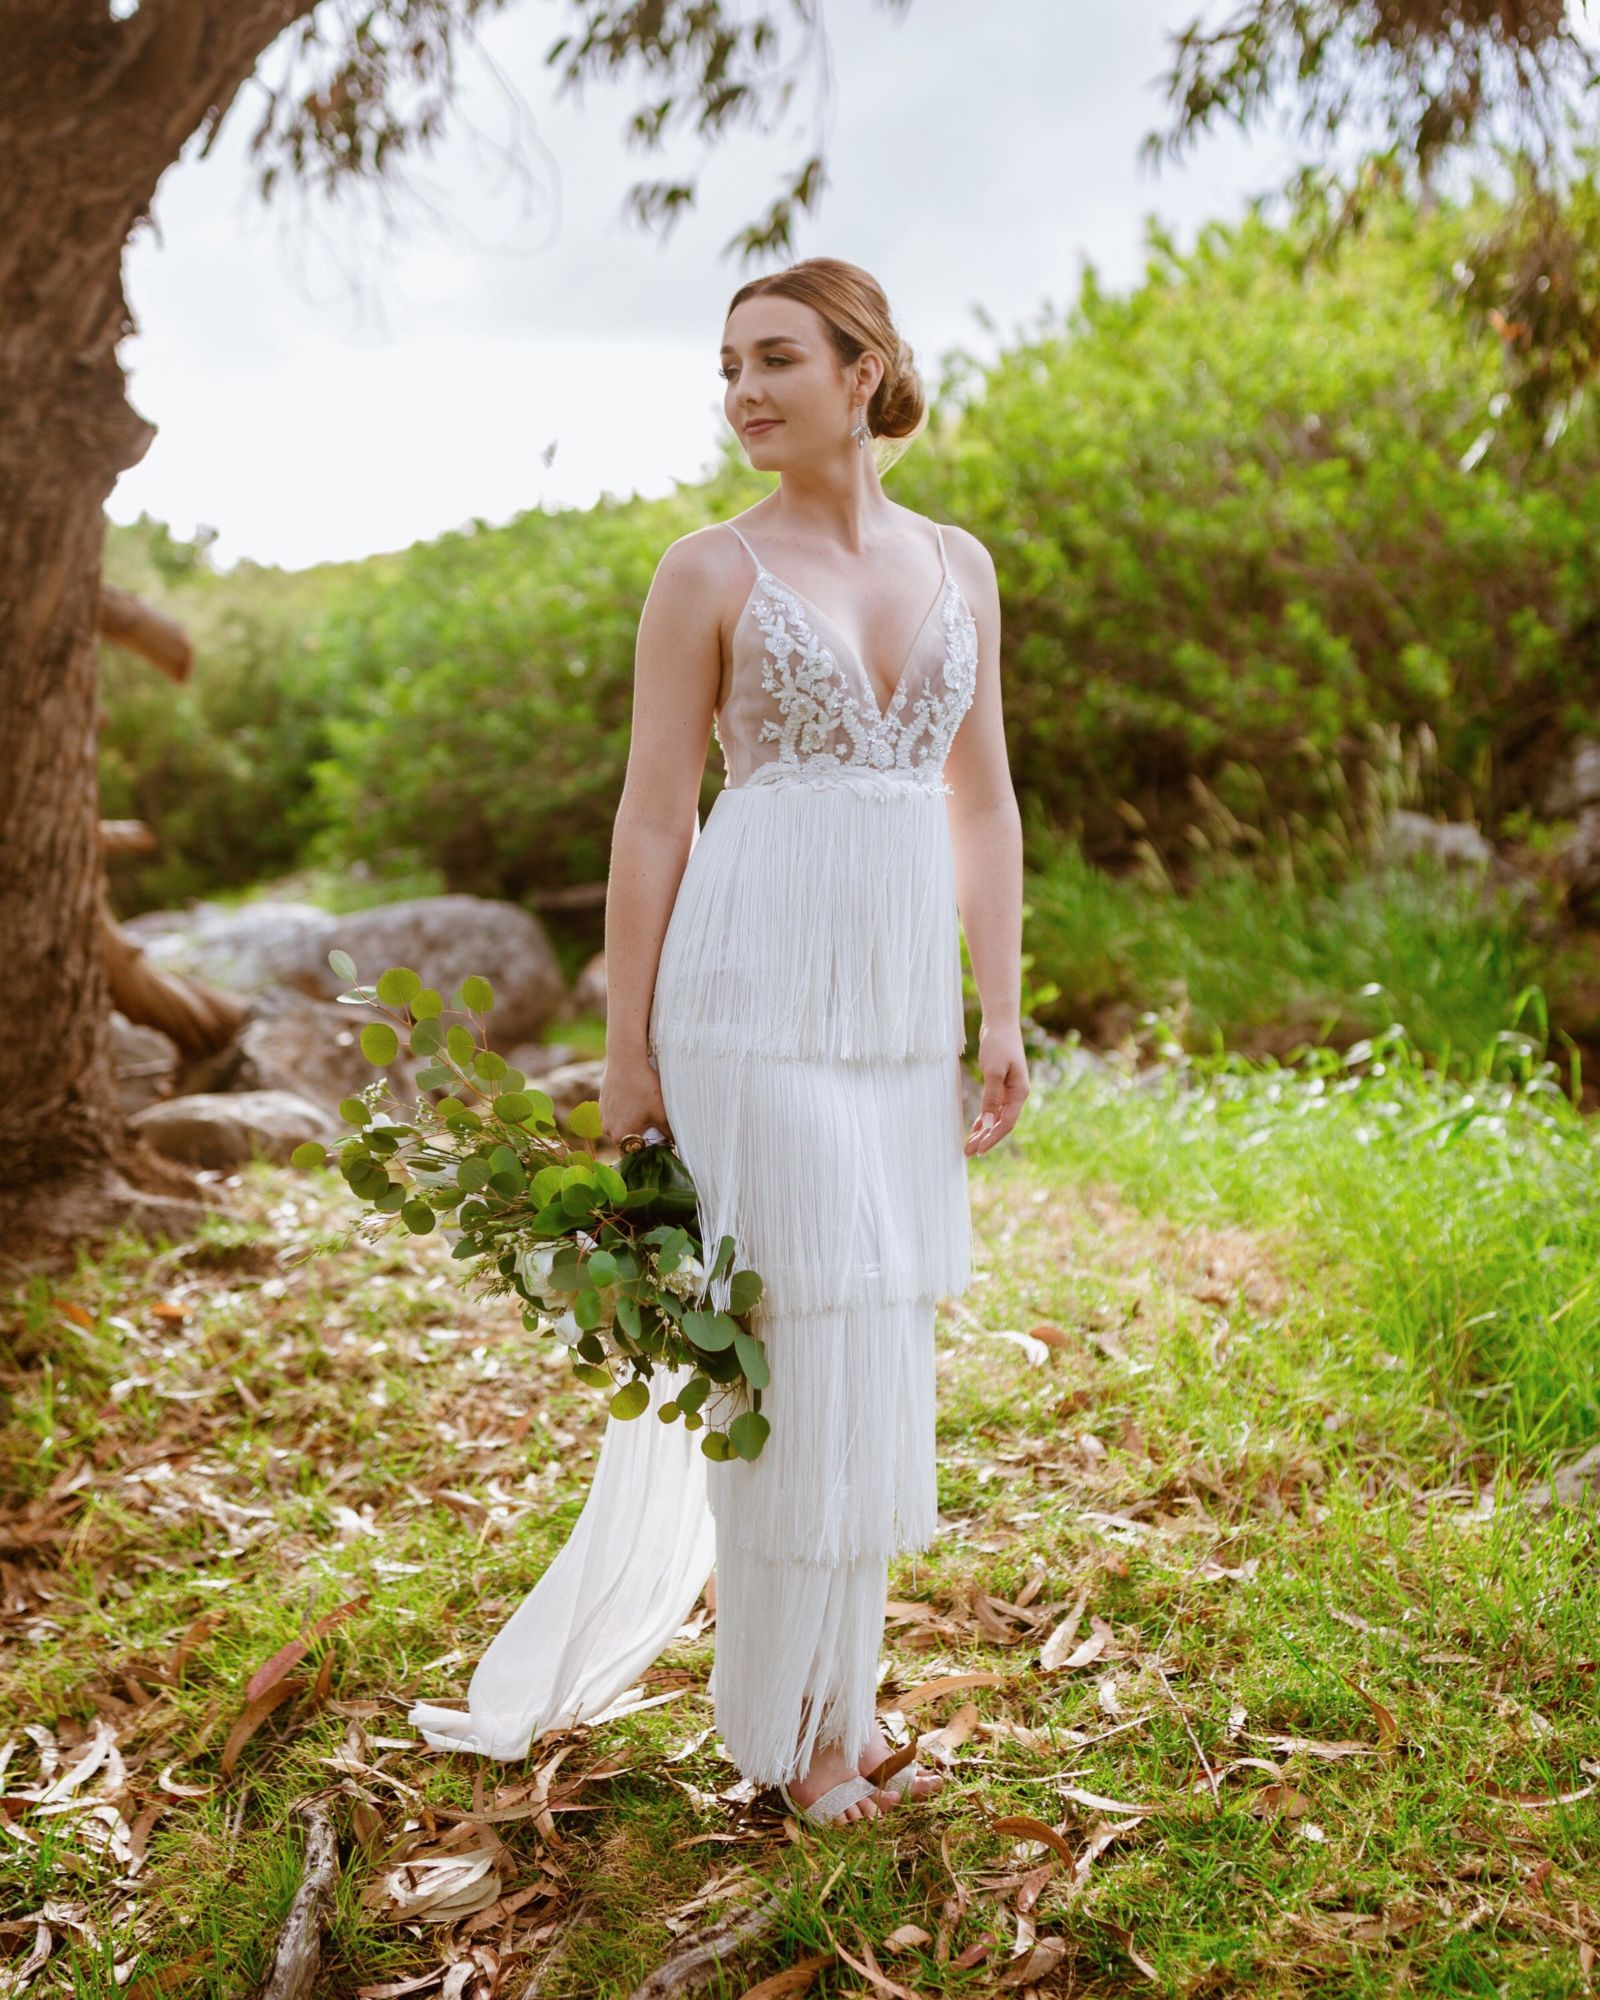 How To Choose A Wedding Dress That Will Influence Your Wedding Decor,Guest Wedding Dresses For October